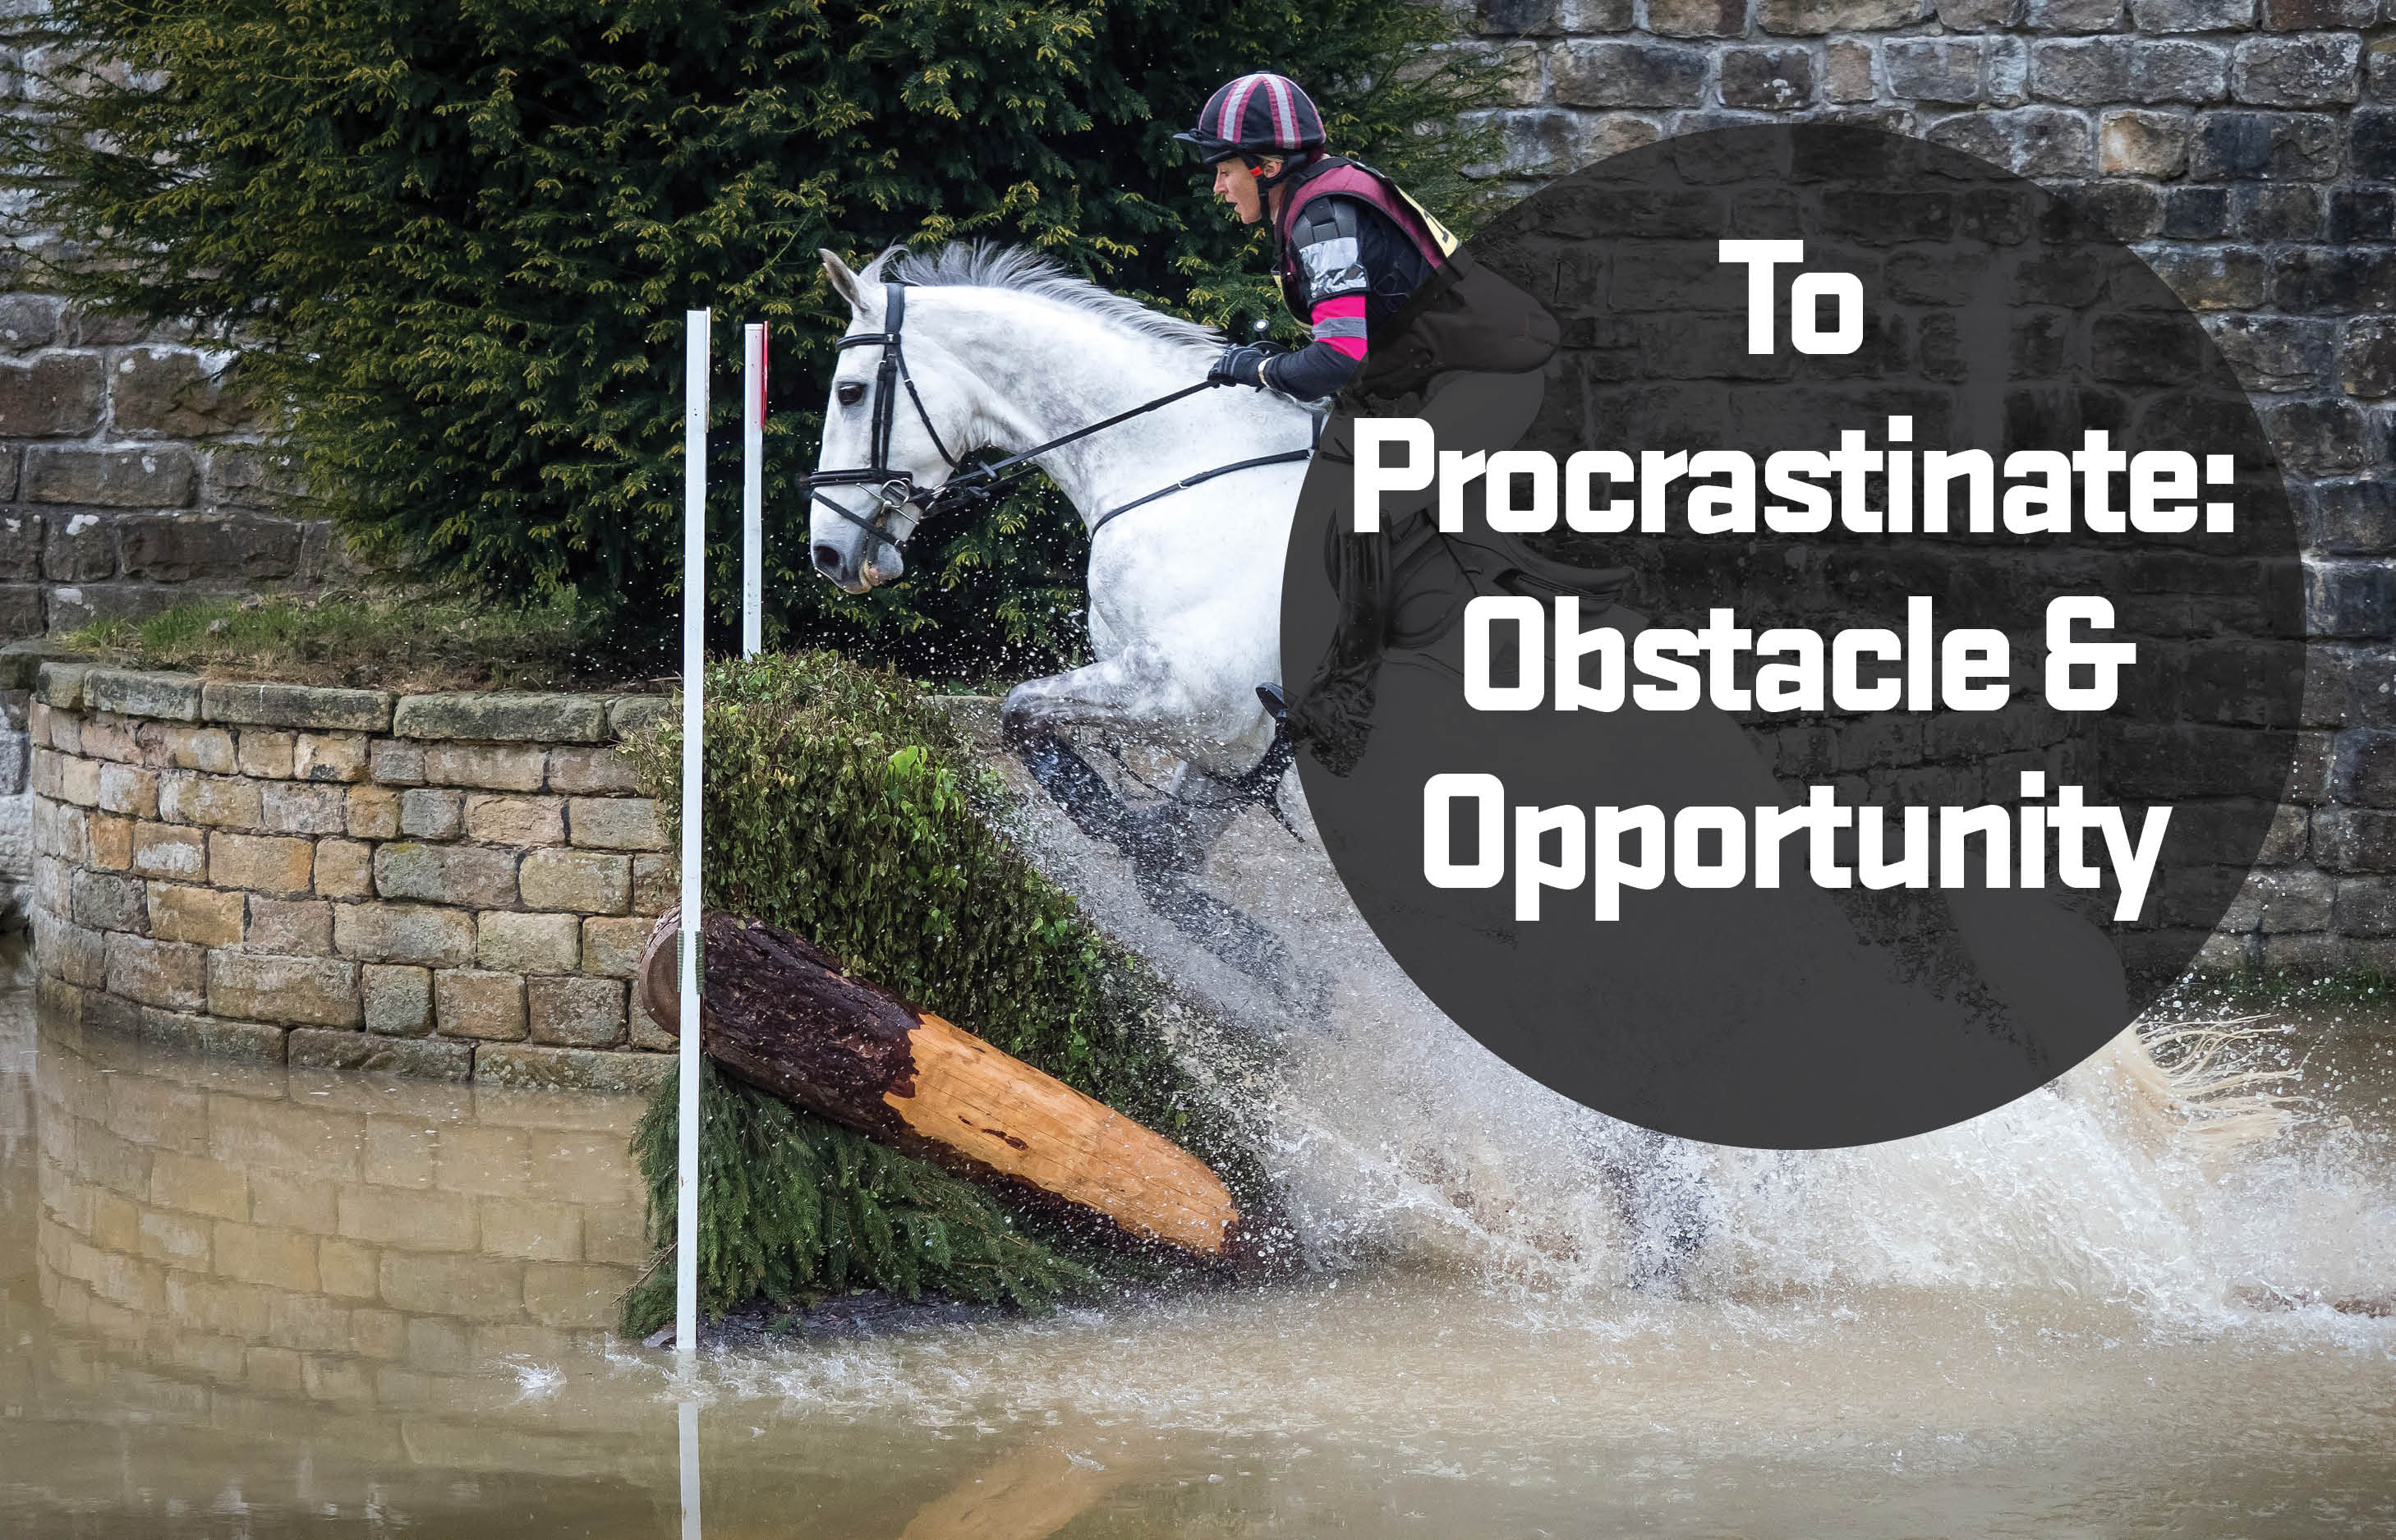 To procrastinate: obstacle & opportunity